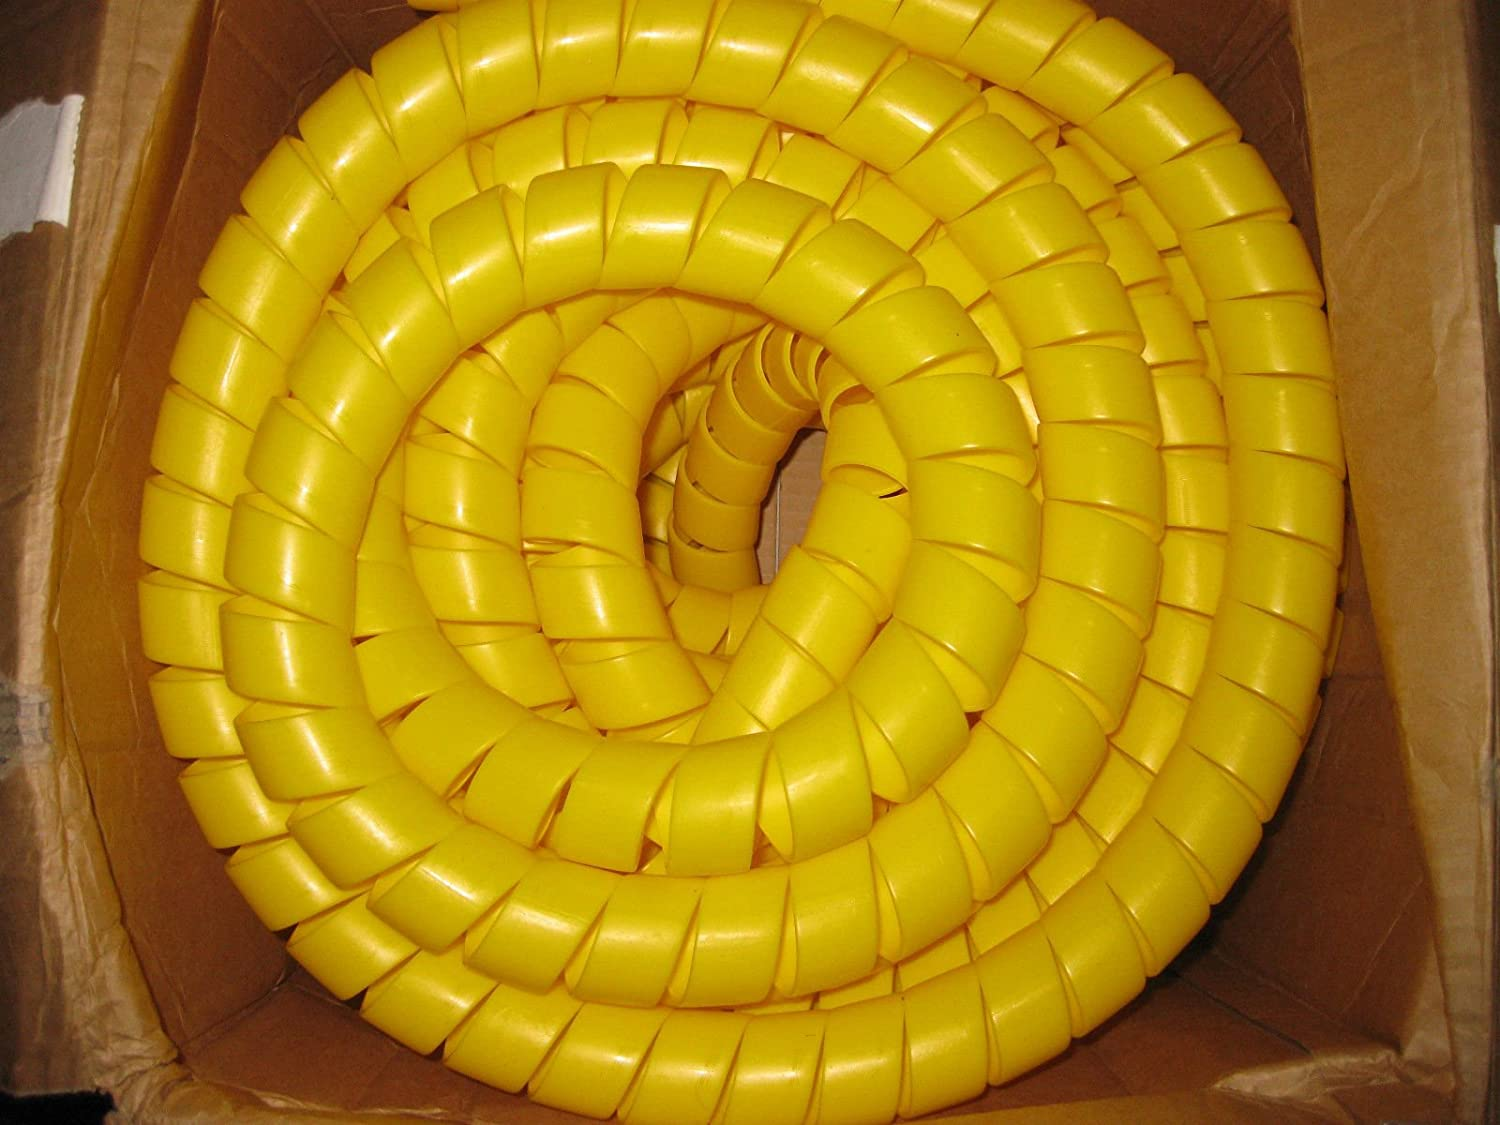 5 meter Hydraulic Hose Spiral Wrap Guard Potection 58-70mm JCB Forestry Tractor digger